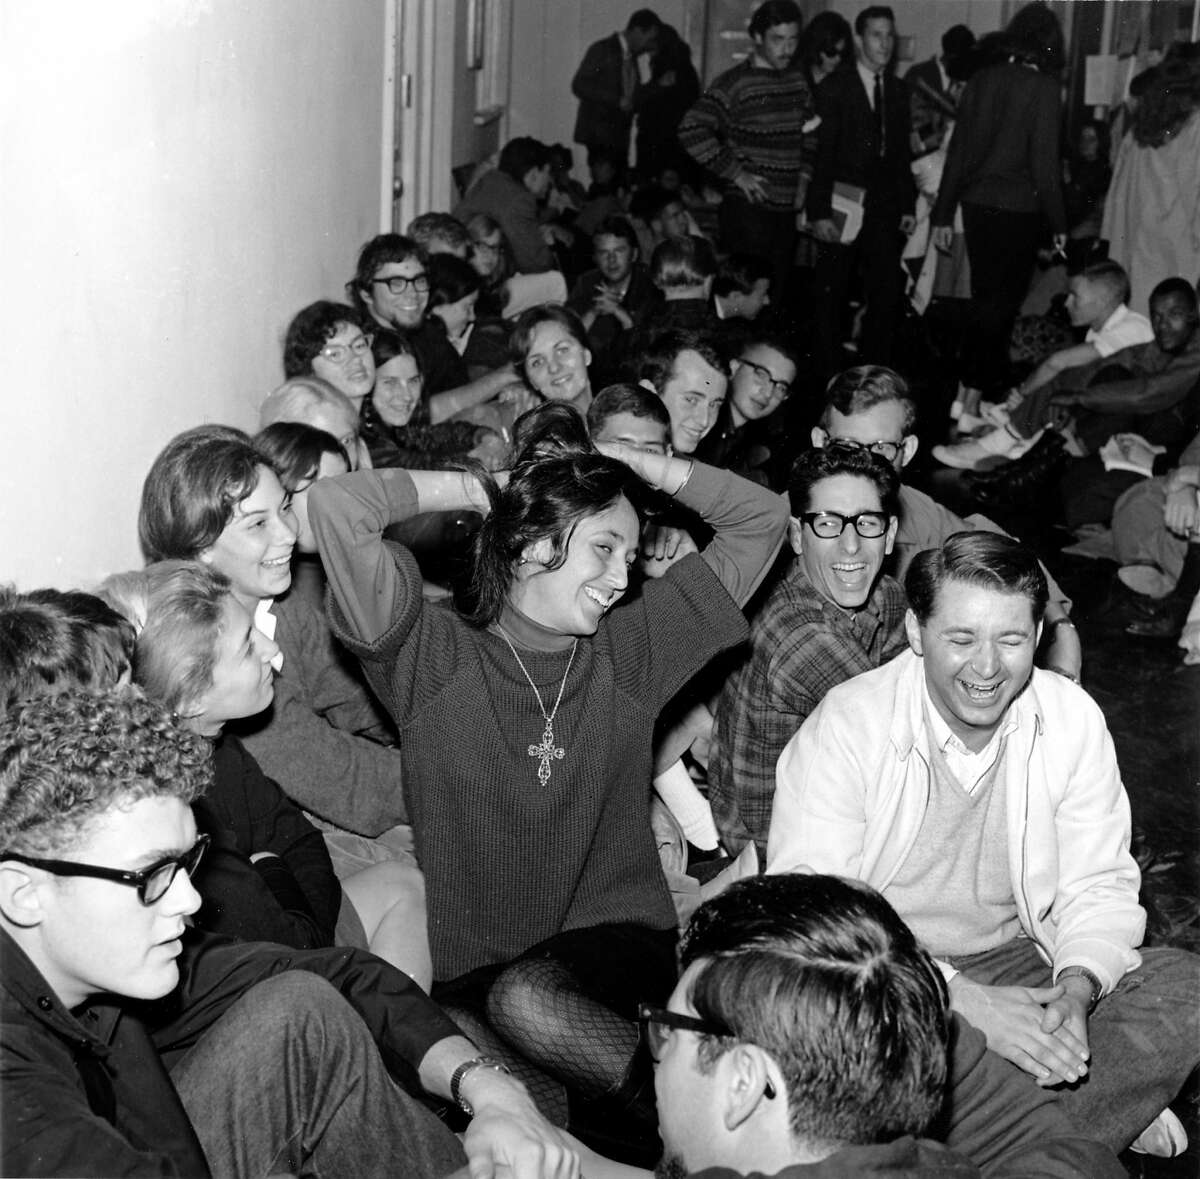 In this Dec. 2, 1964 file photo, folk singer Joan Baez clowns as she sits with student demonstrators in Sproul Hall on the University of California campus in Berkeley, Calif.